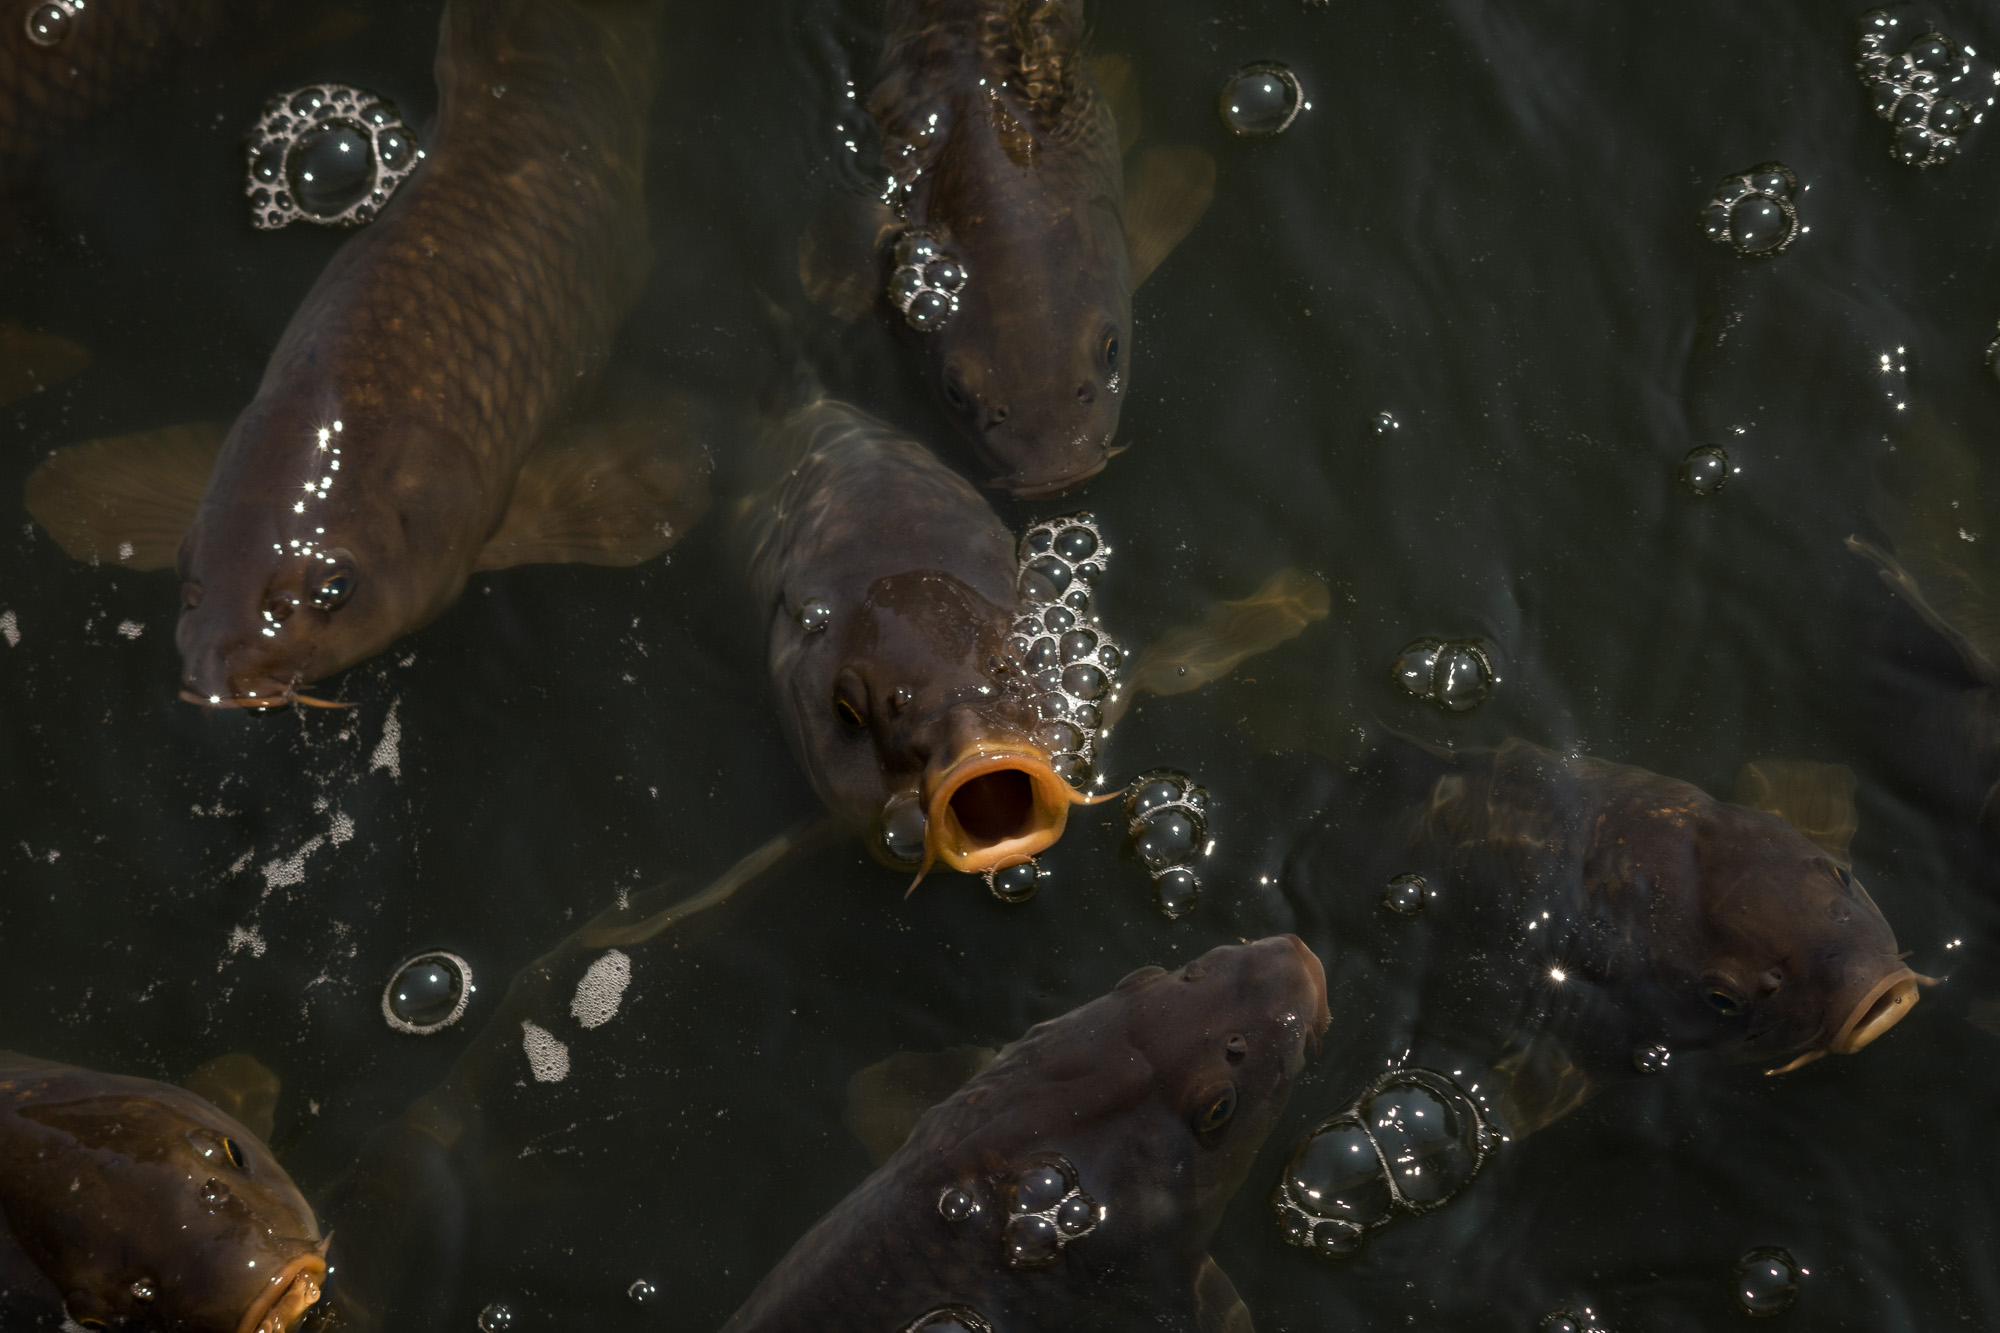 The carp are hungry